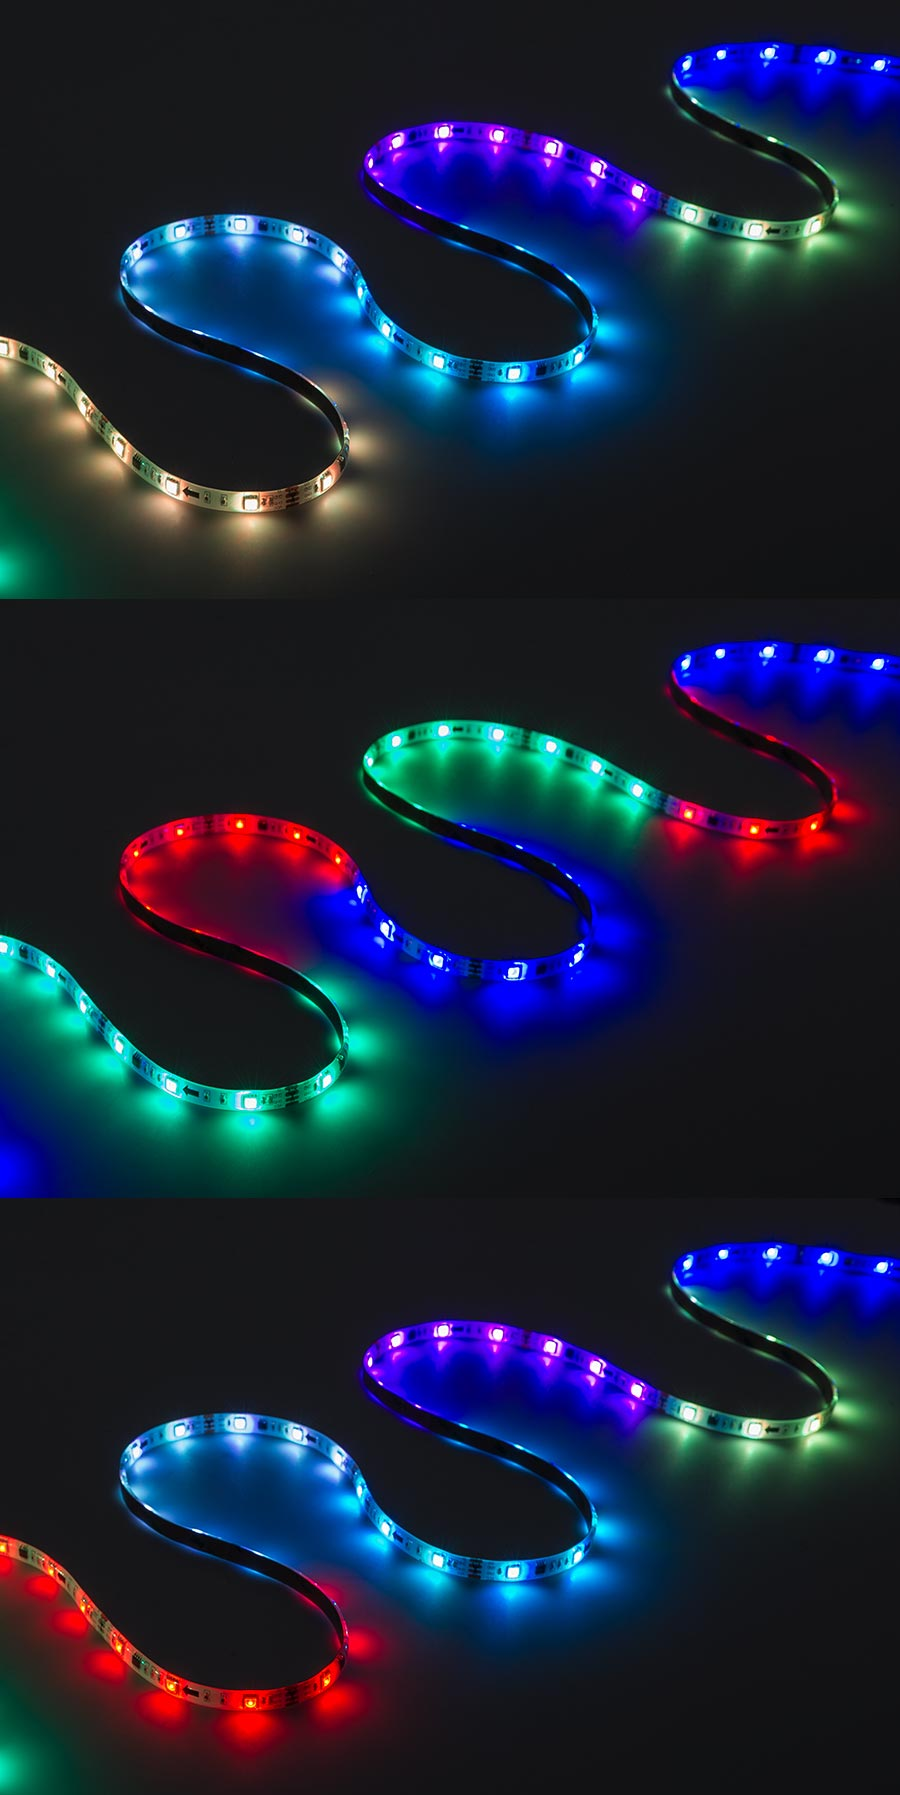 Rgb Led Wiring Diagram Lights In Series 12 Volt Light Color Chasing Strip Tape With 9 Smds Ft Rh Superbrightleds Com